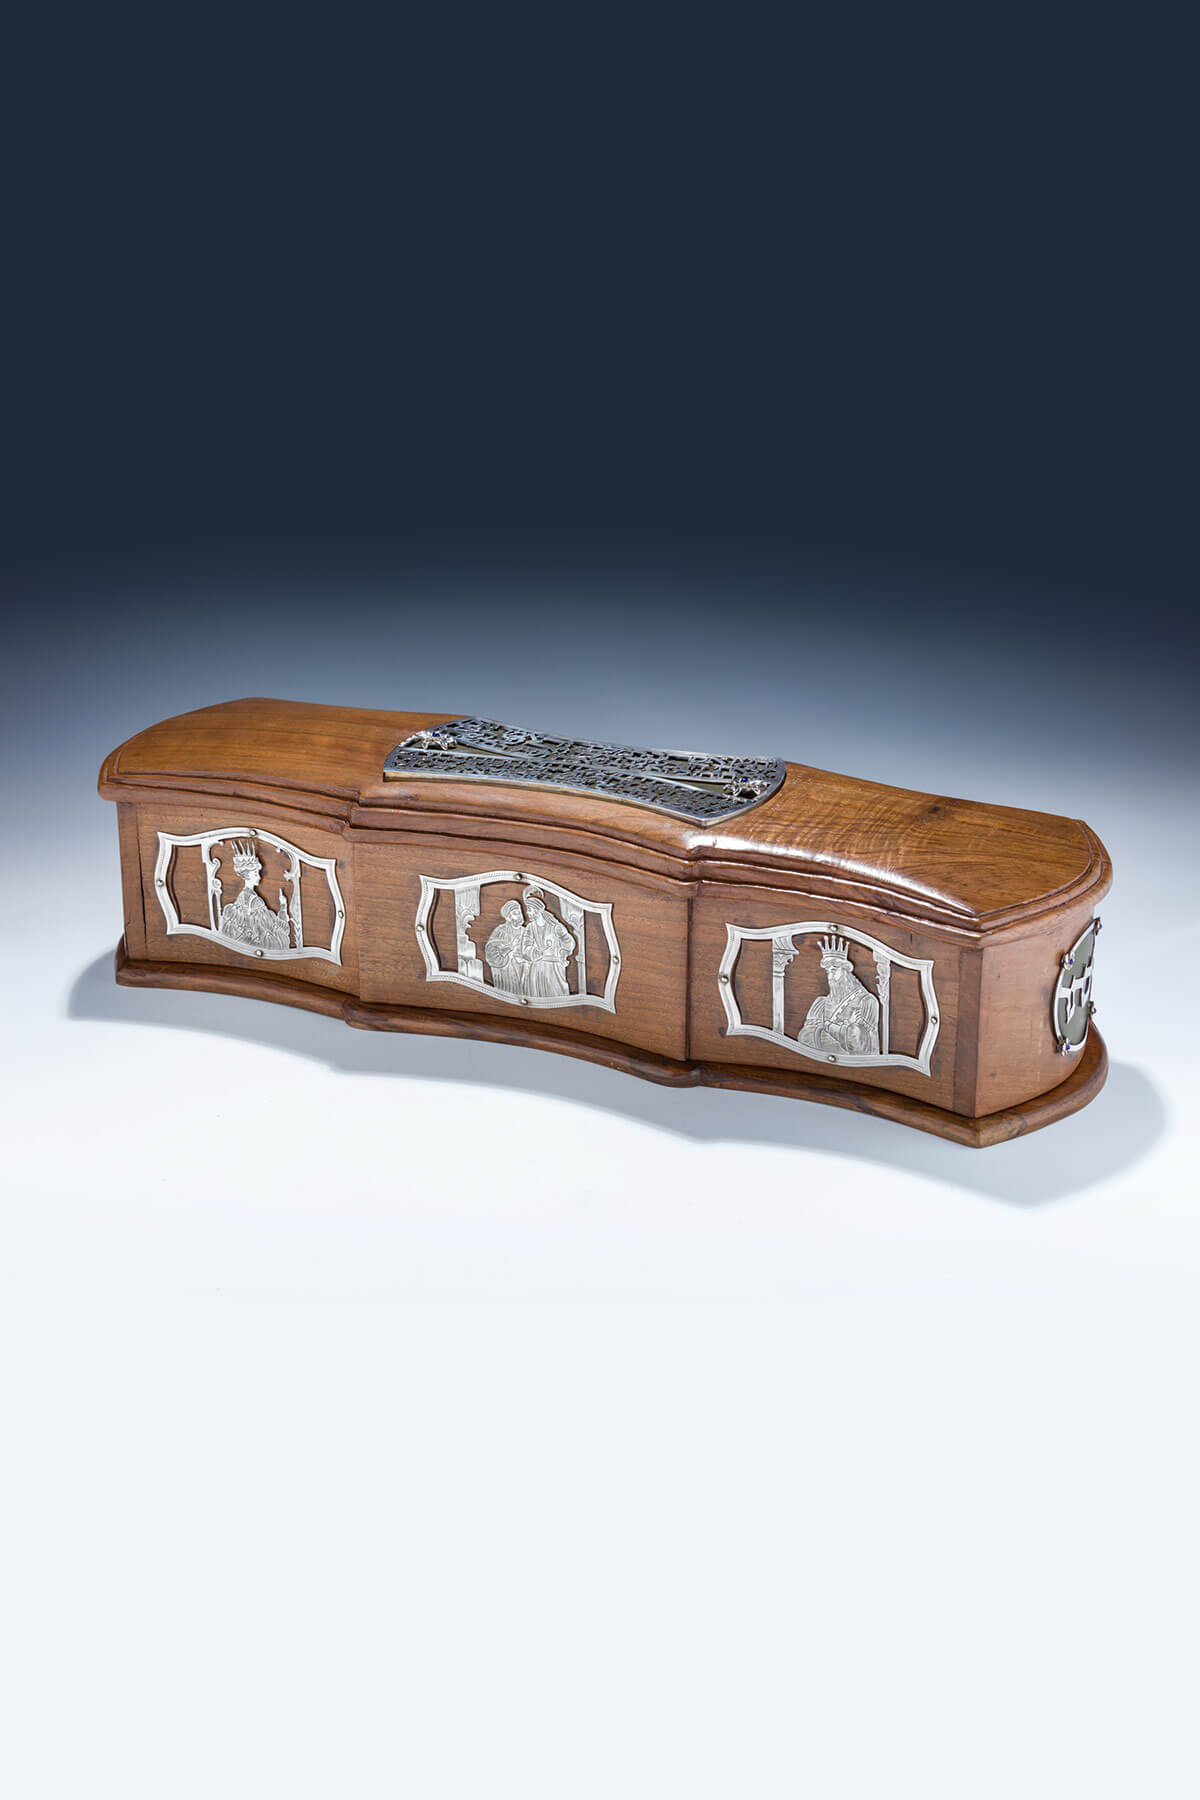 138. A Hand Made Wooden And Sterling Megillah Case by Dekel Aviv